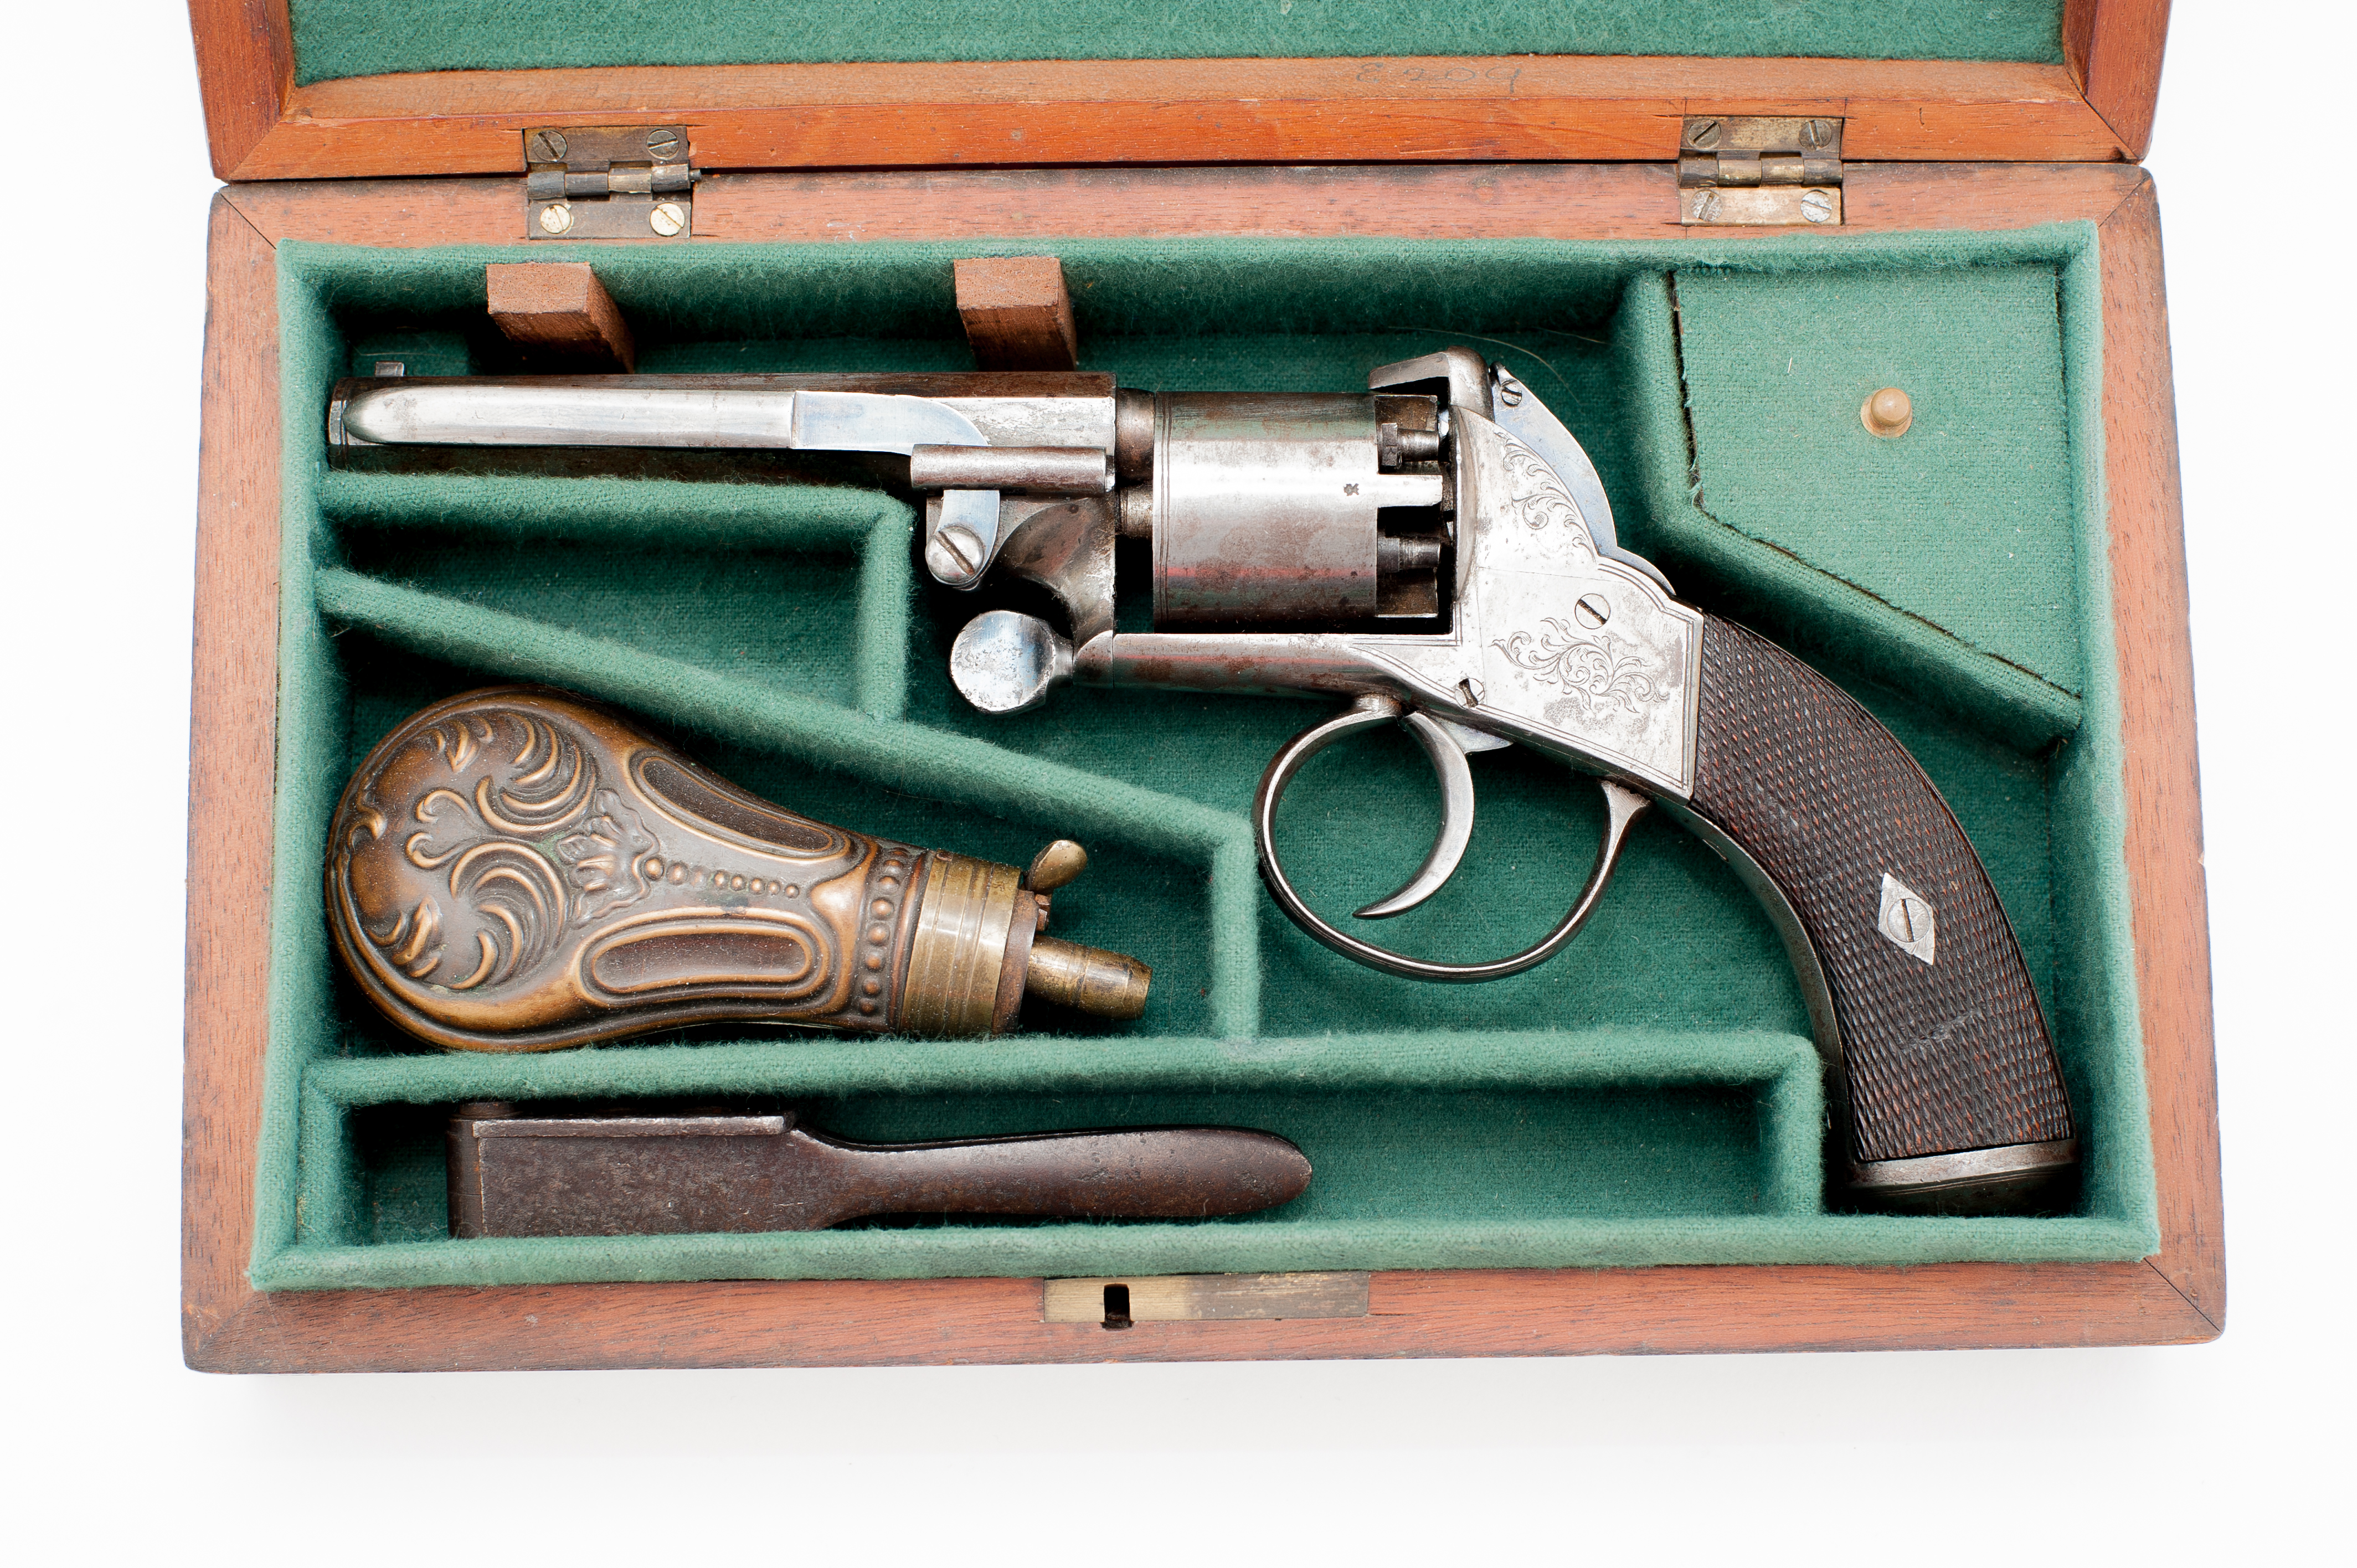 Dickinson double action percussion revolver cased authentic .38 caliber engraved